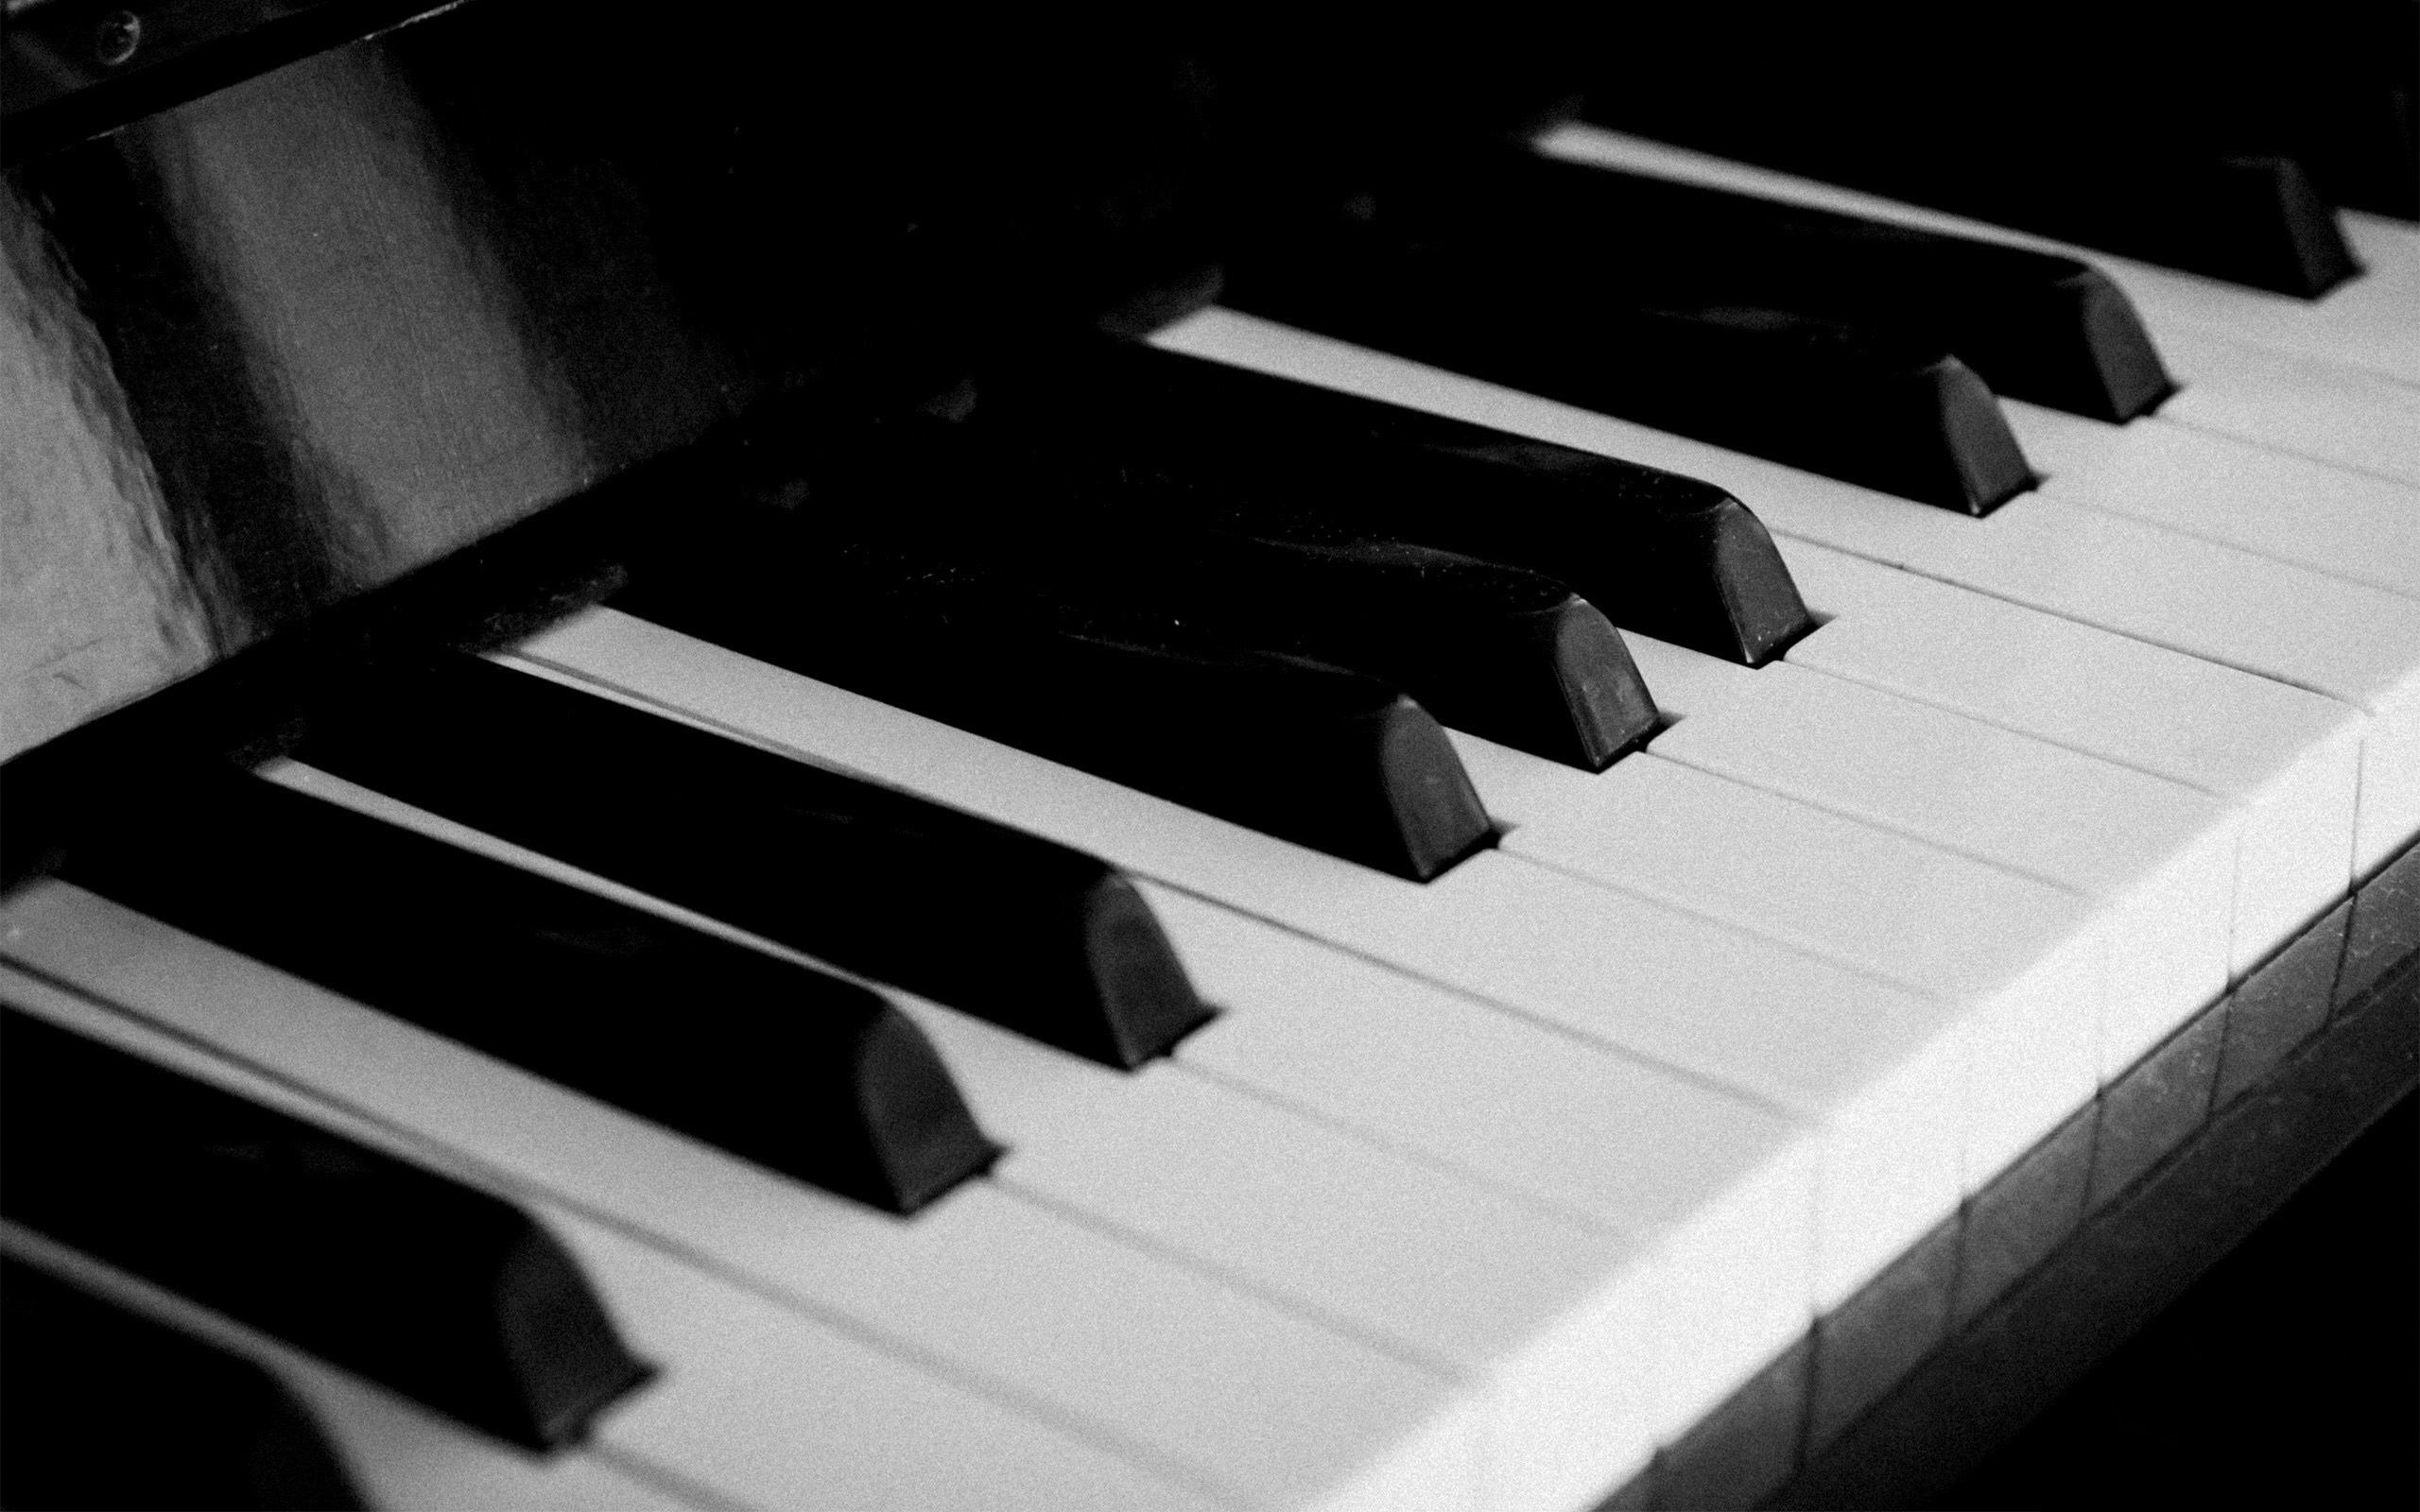 Piano Music Wallpaper: Piano Wallpapers For Desktop